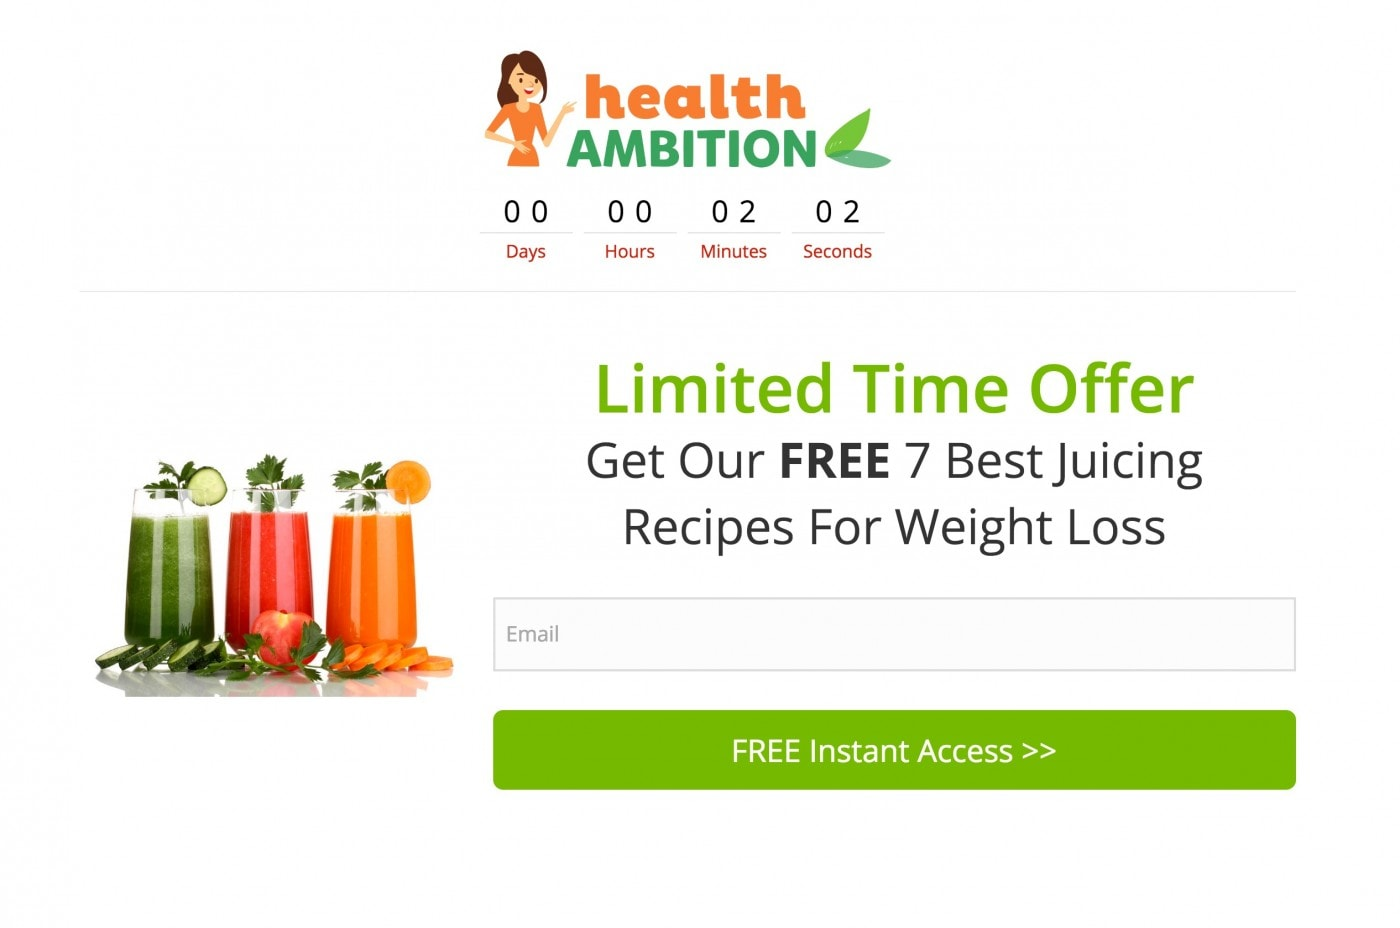 HealthAmbition juicing opt in